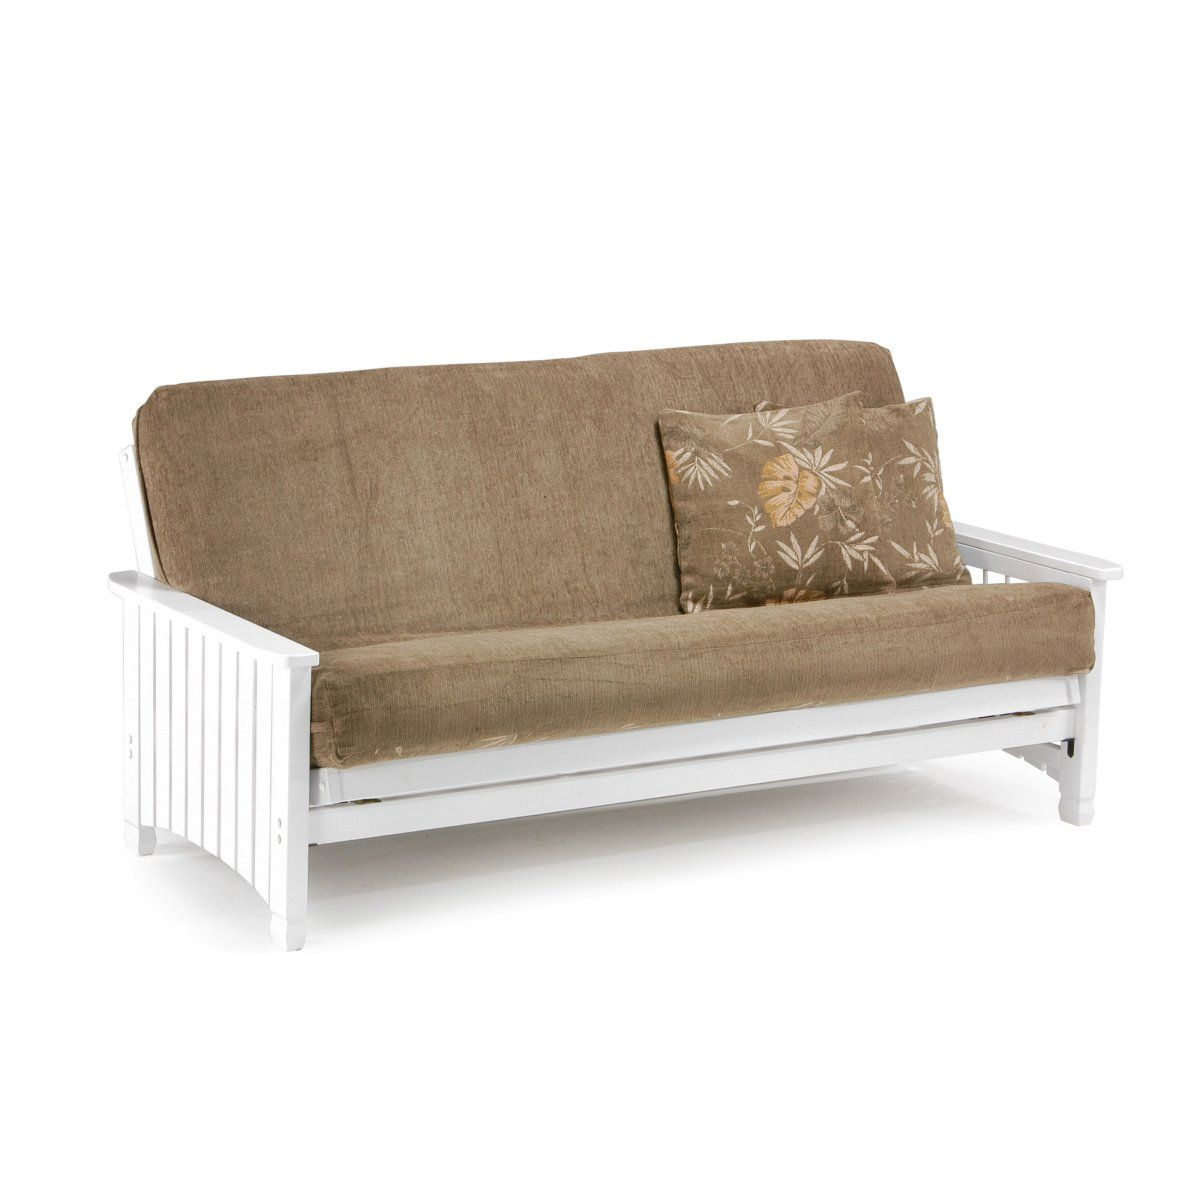 Medium image of key west white futon frame  436